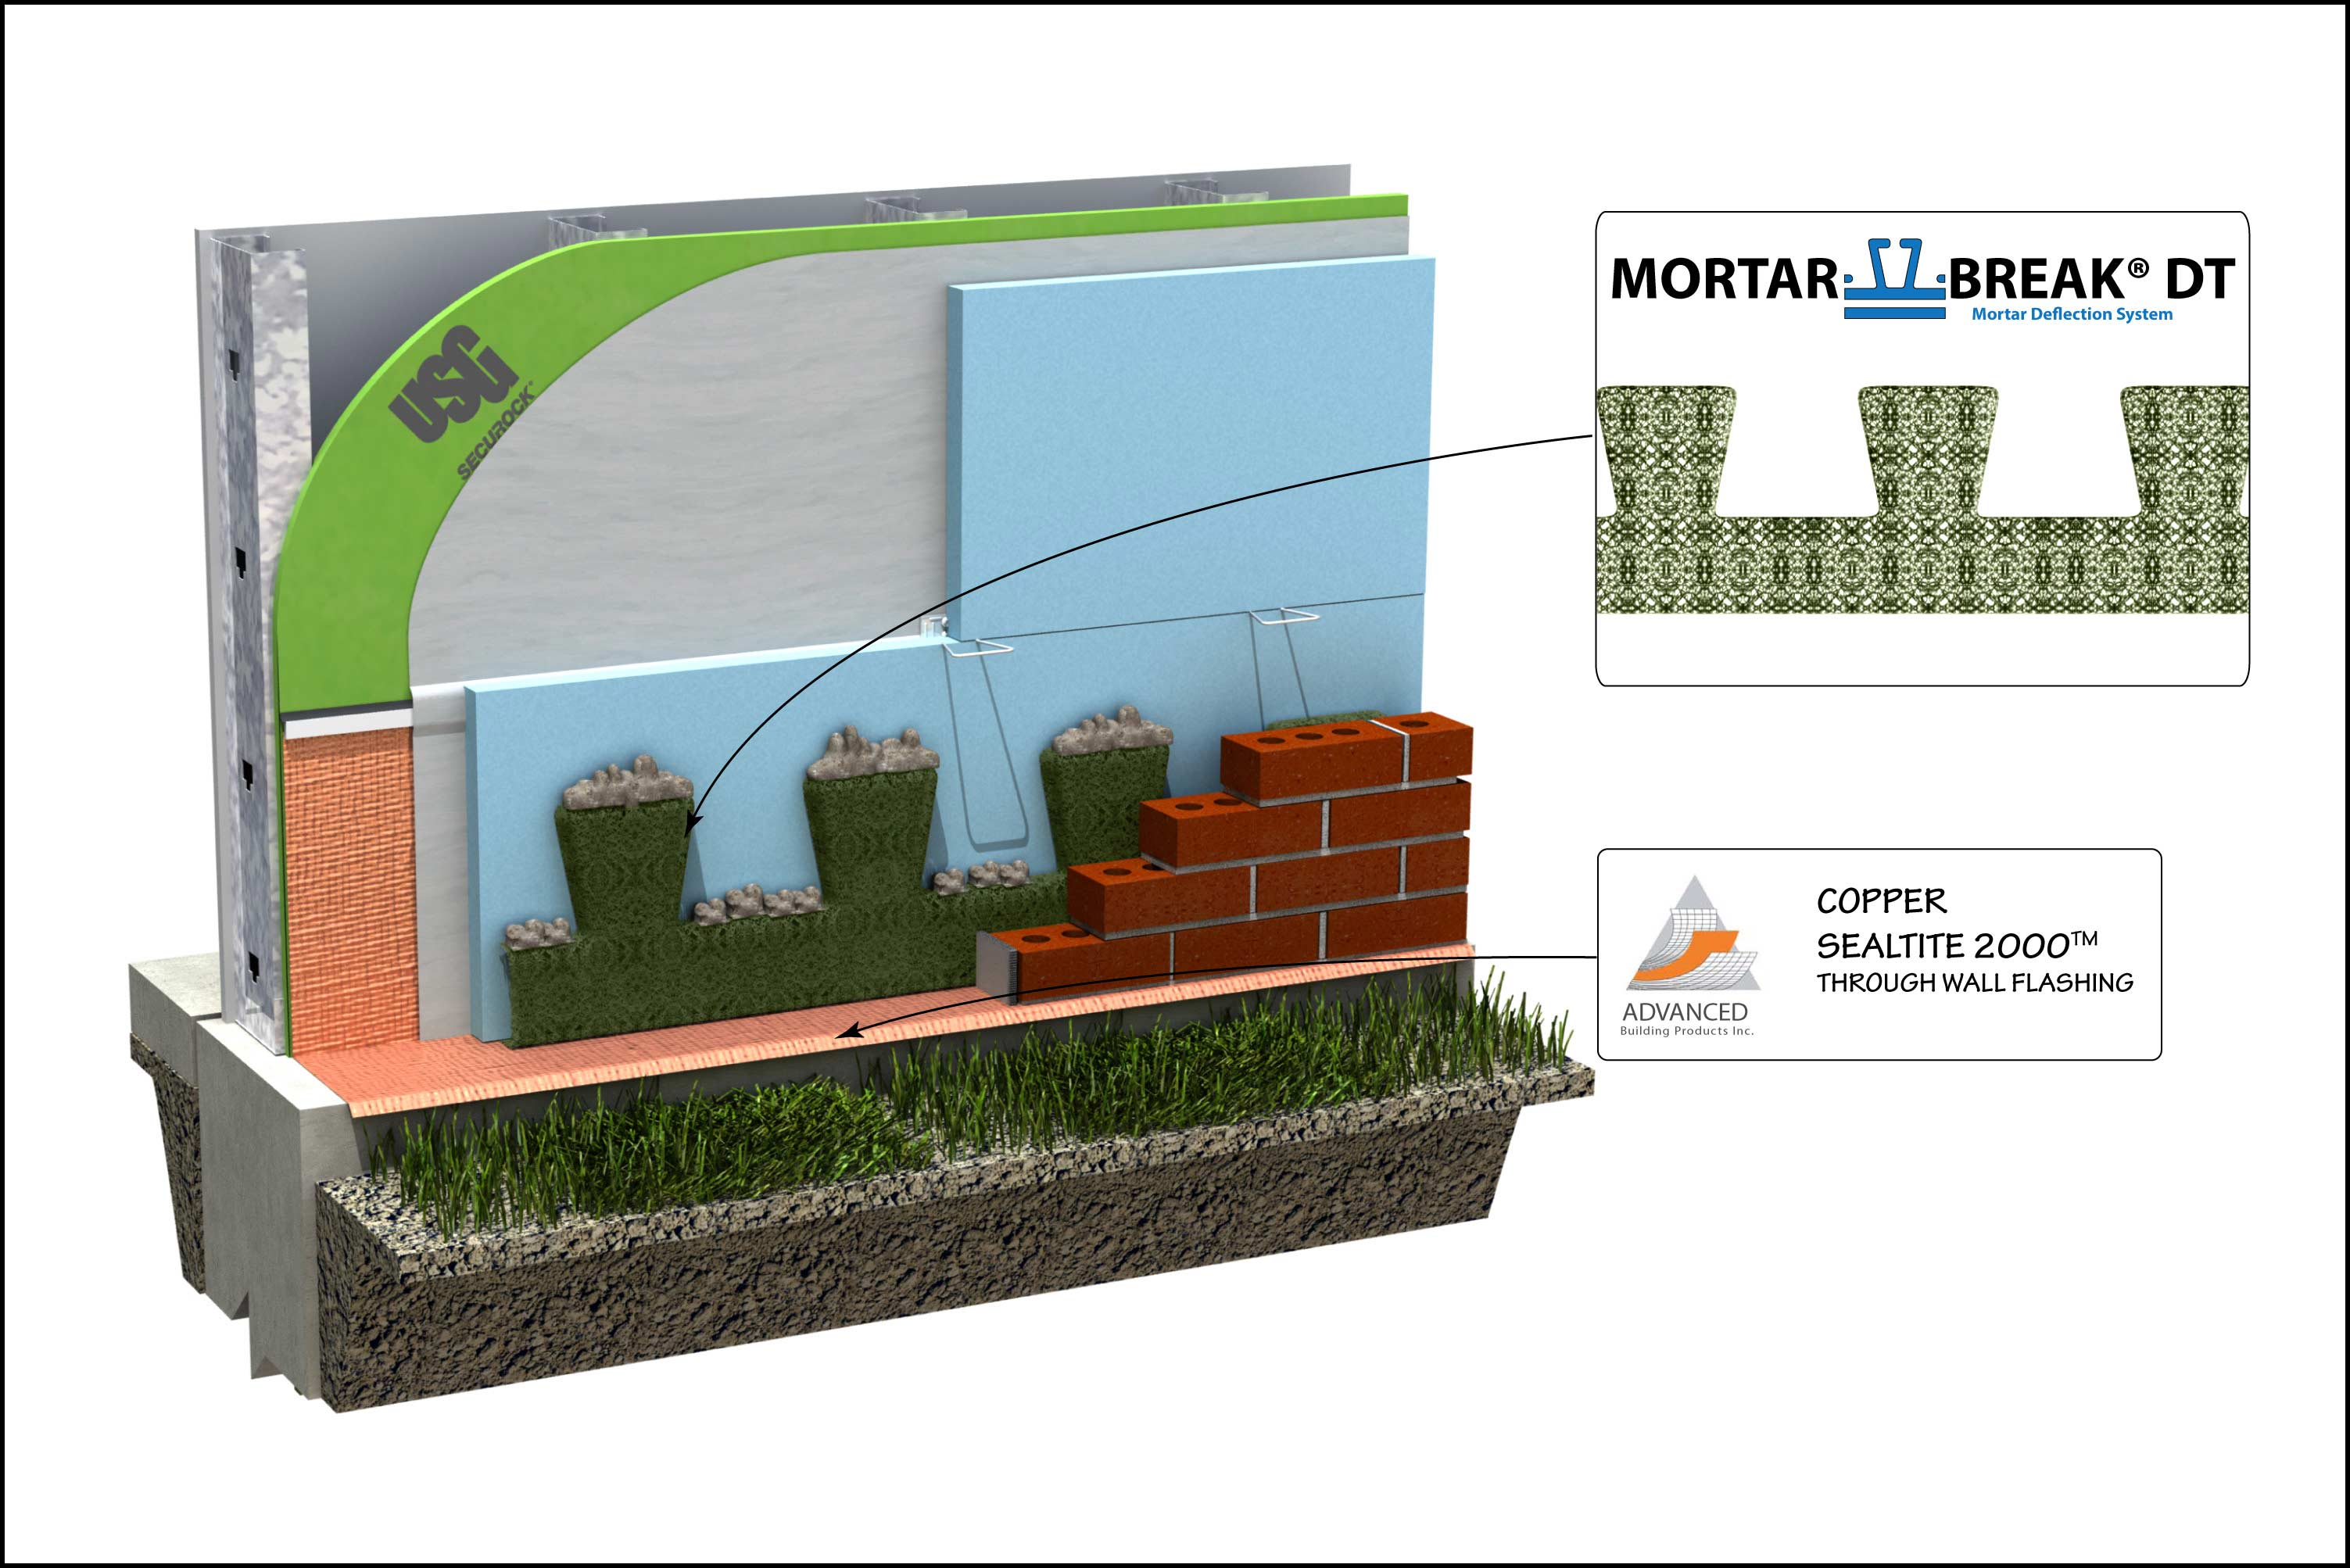 Advanced Building Products: Mortar Break DT